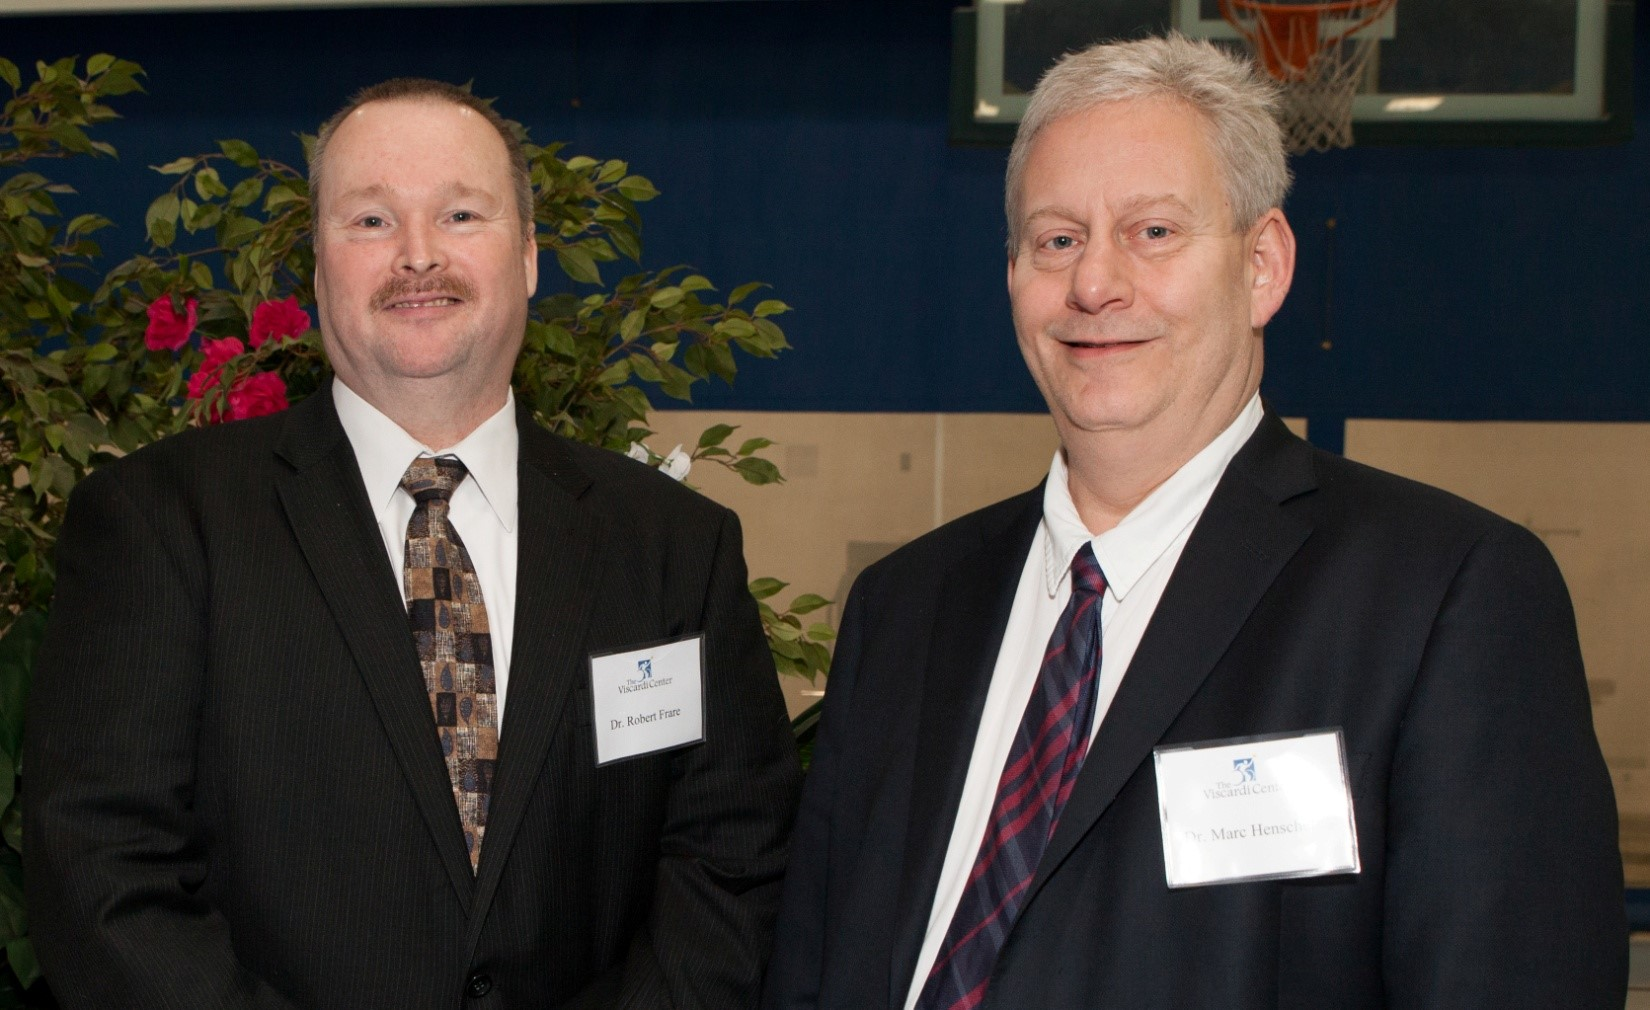 Dr. Robert Frar, Clinical Instructor, and Dr. Marc Henschel, Clinical Assistant Professor of the Oral and Maxillofacial Pathology, Radiology and Medicine Department at New York University, connect during the Project Accessible Oral Health event.